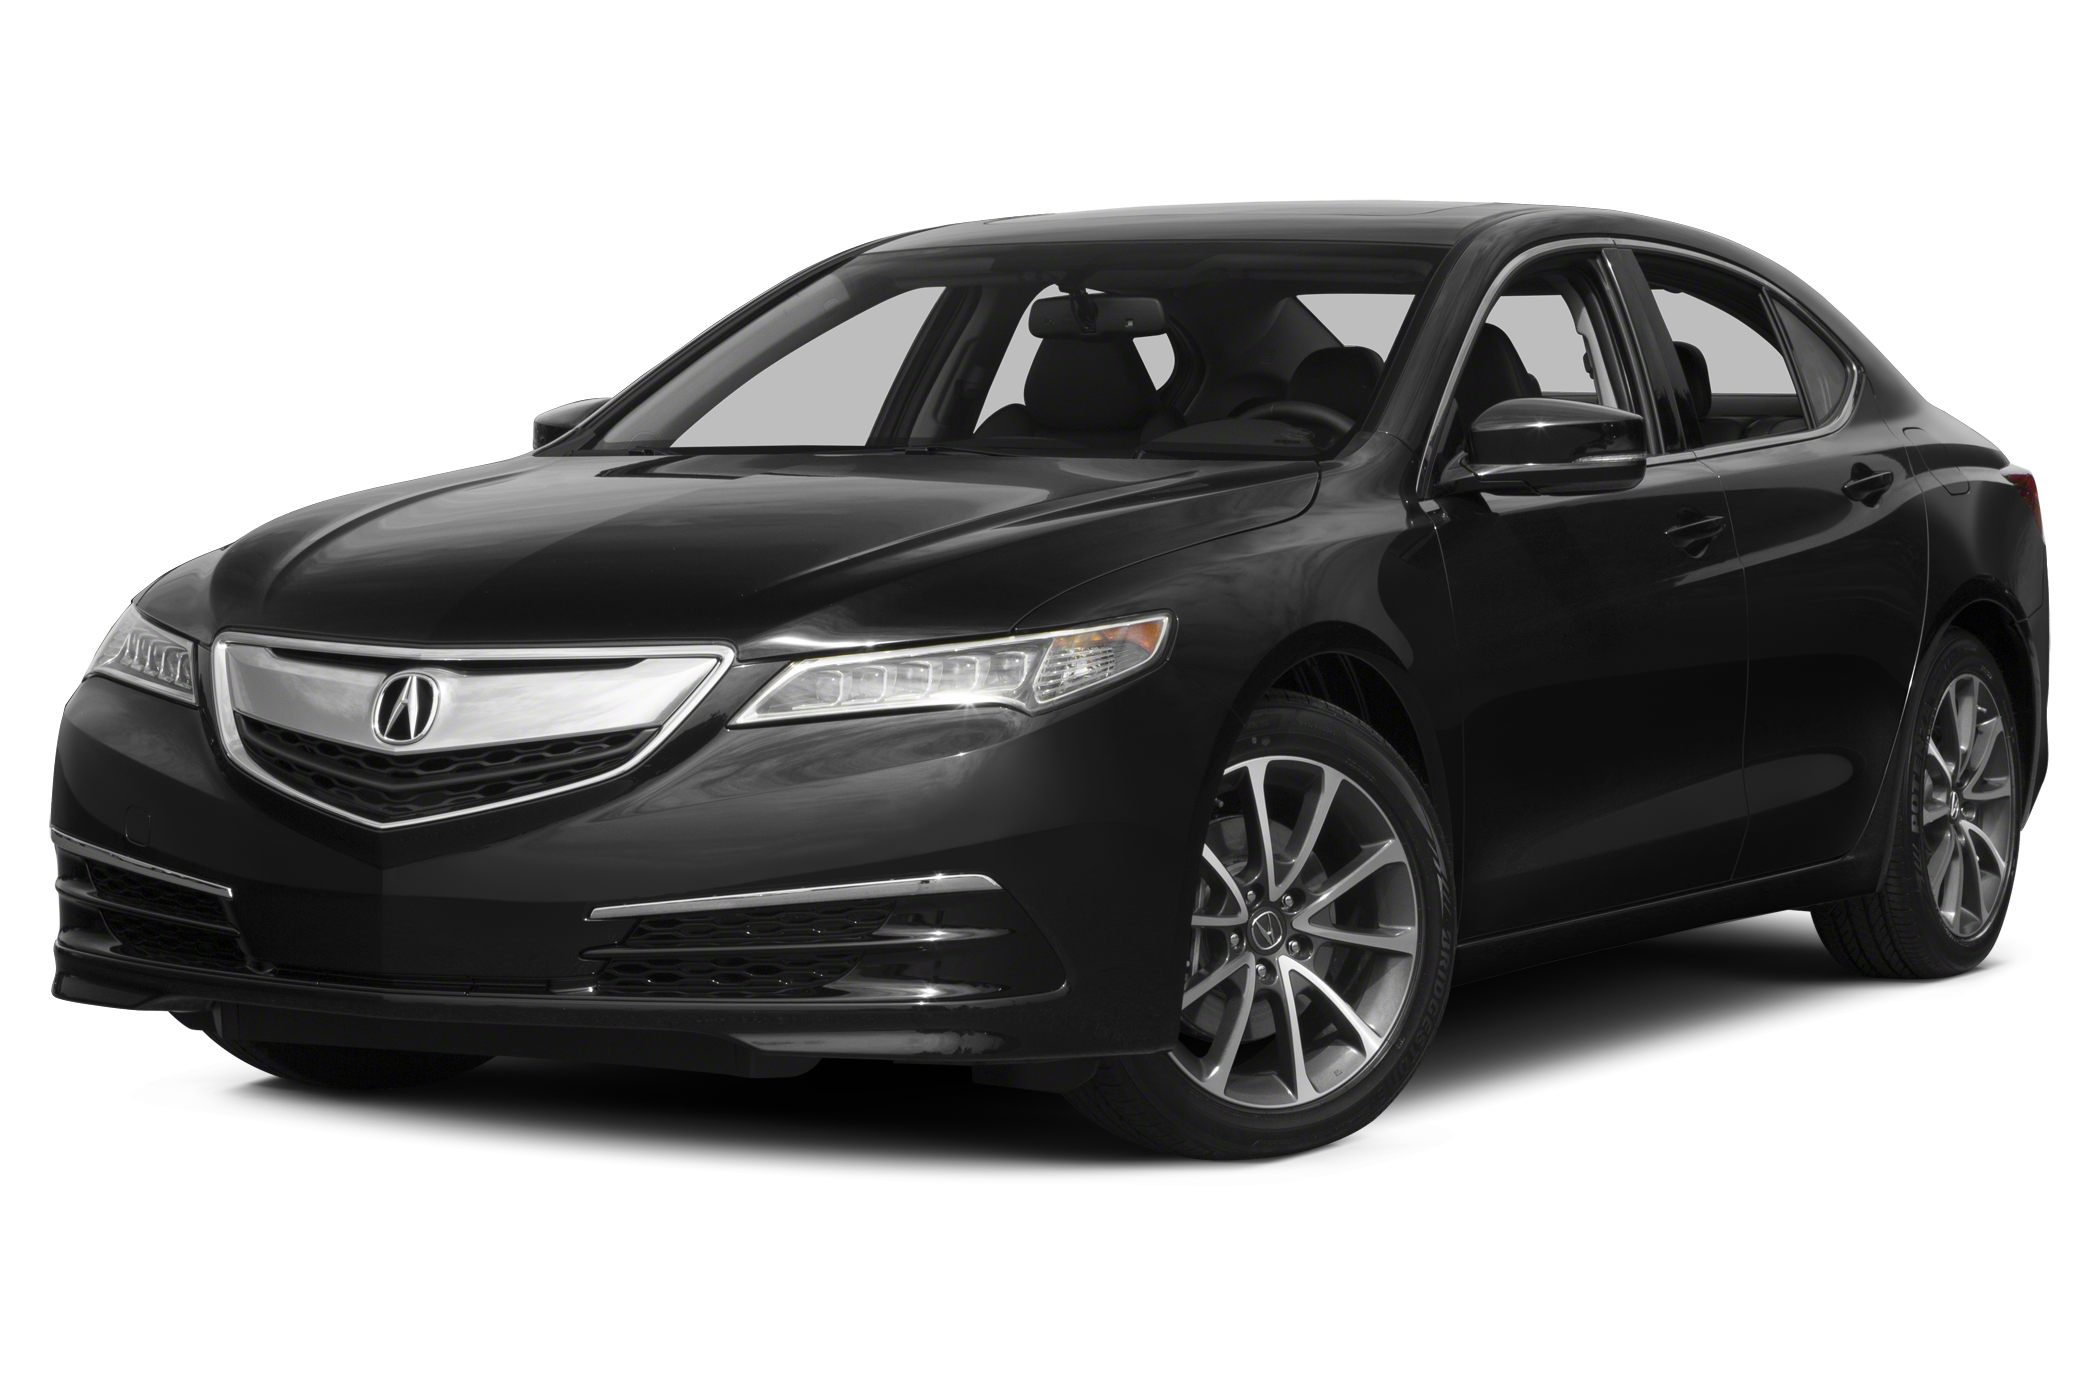 2015 Acura TLX V6 Sedan for sale in Huntington for $36,115 with 10 miles.